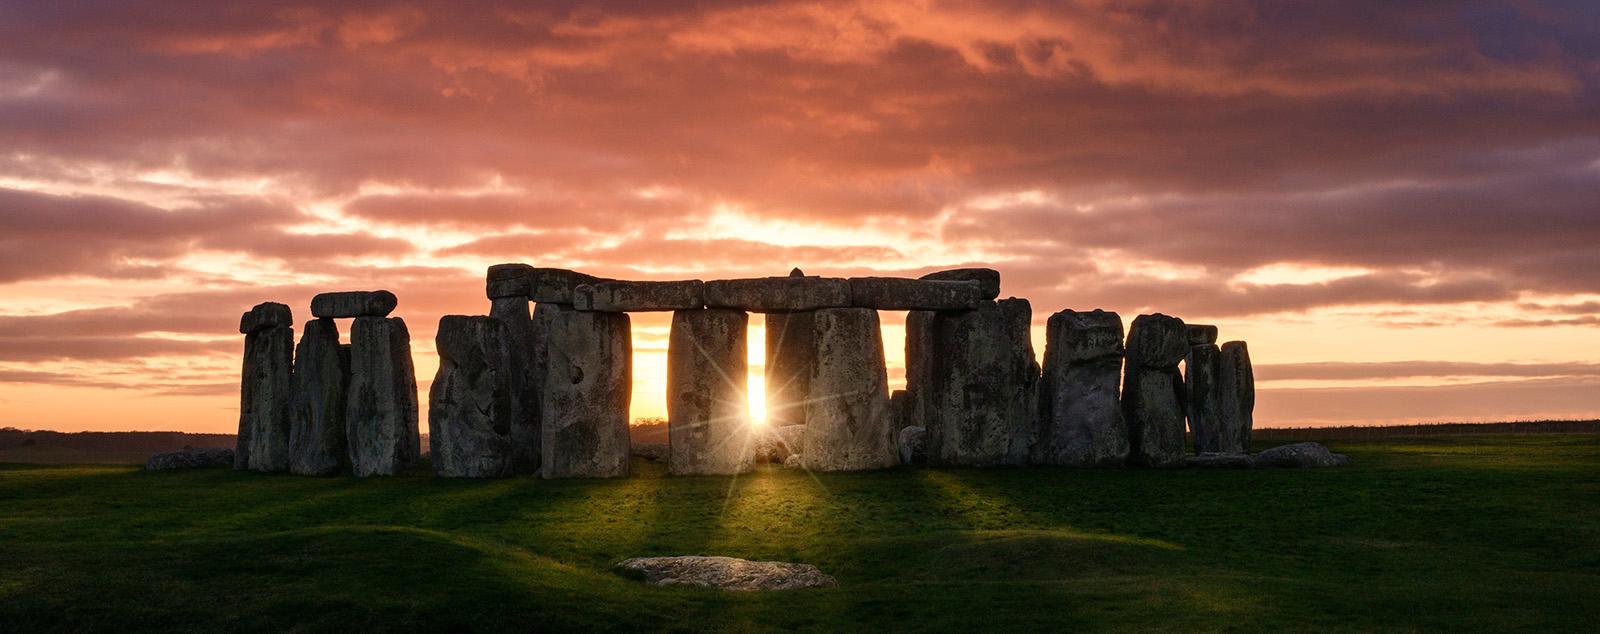 Stonehenge at sunset banner image